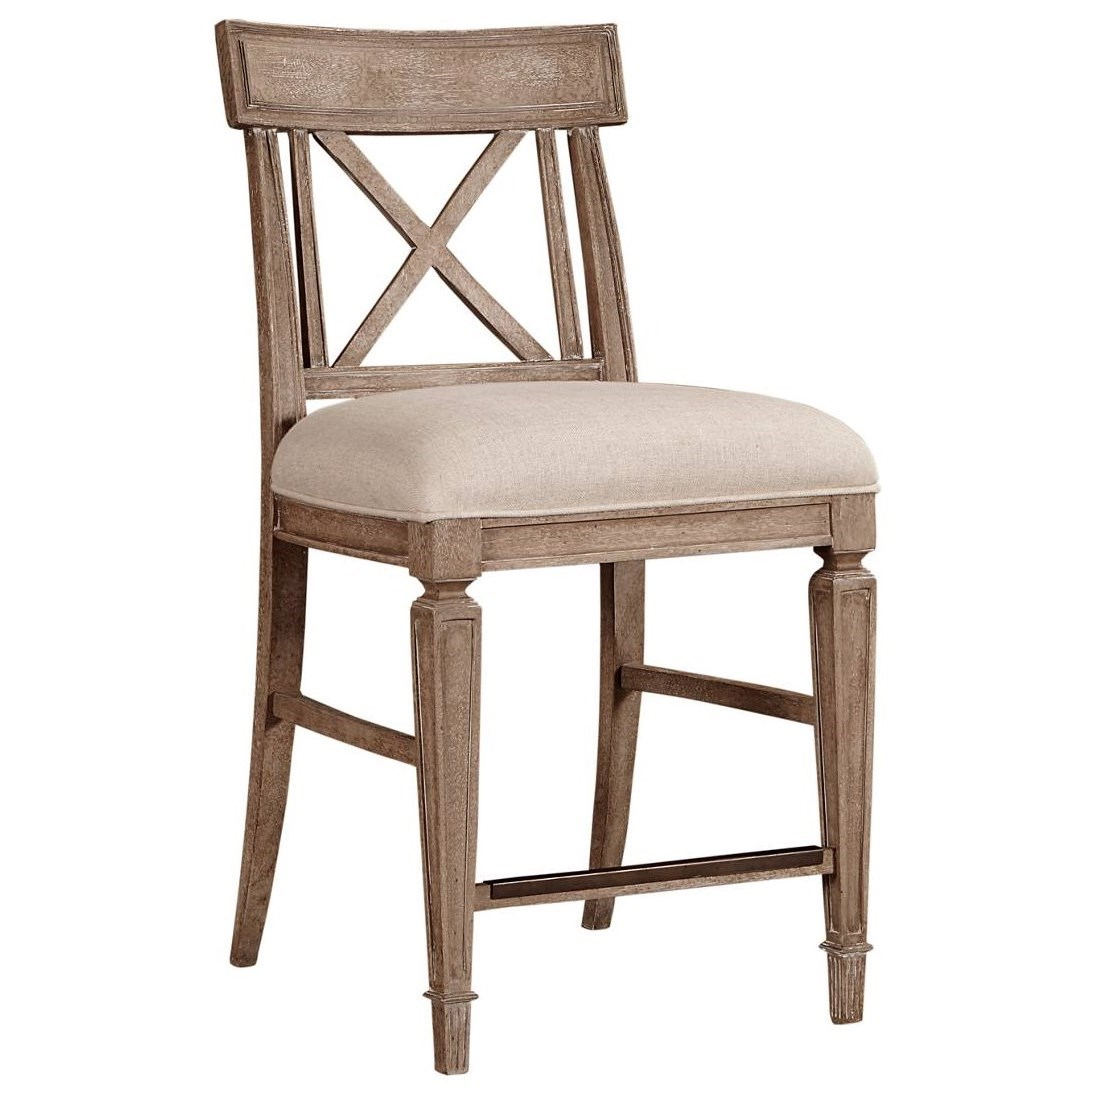 Stanley Furniture Wethersfield Estate Counter Stool With X